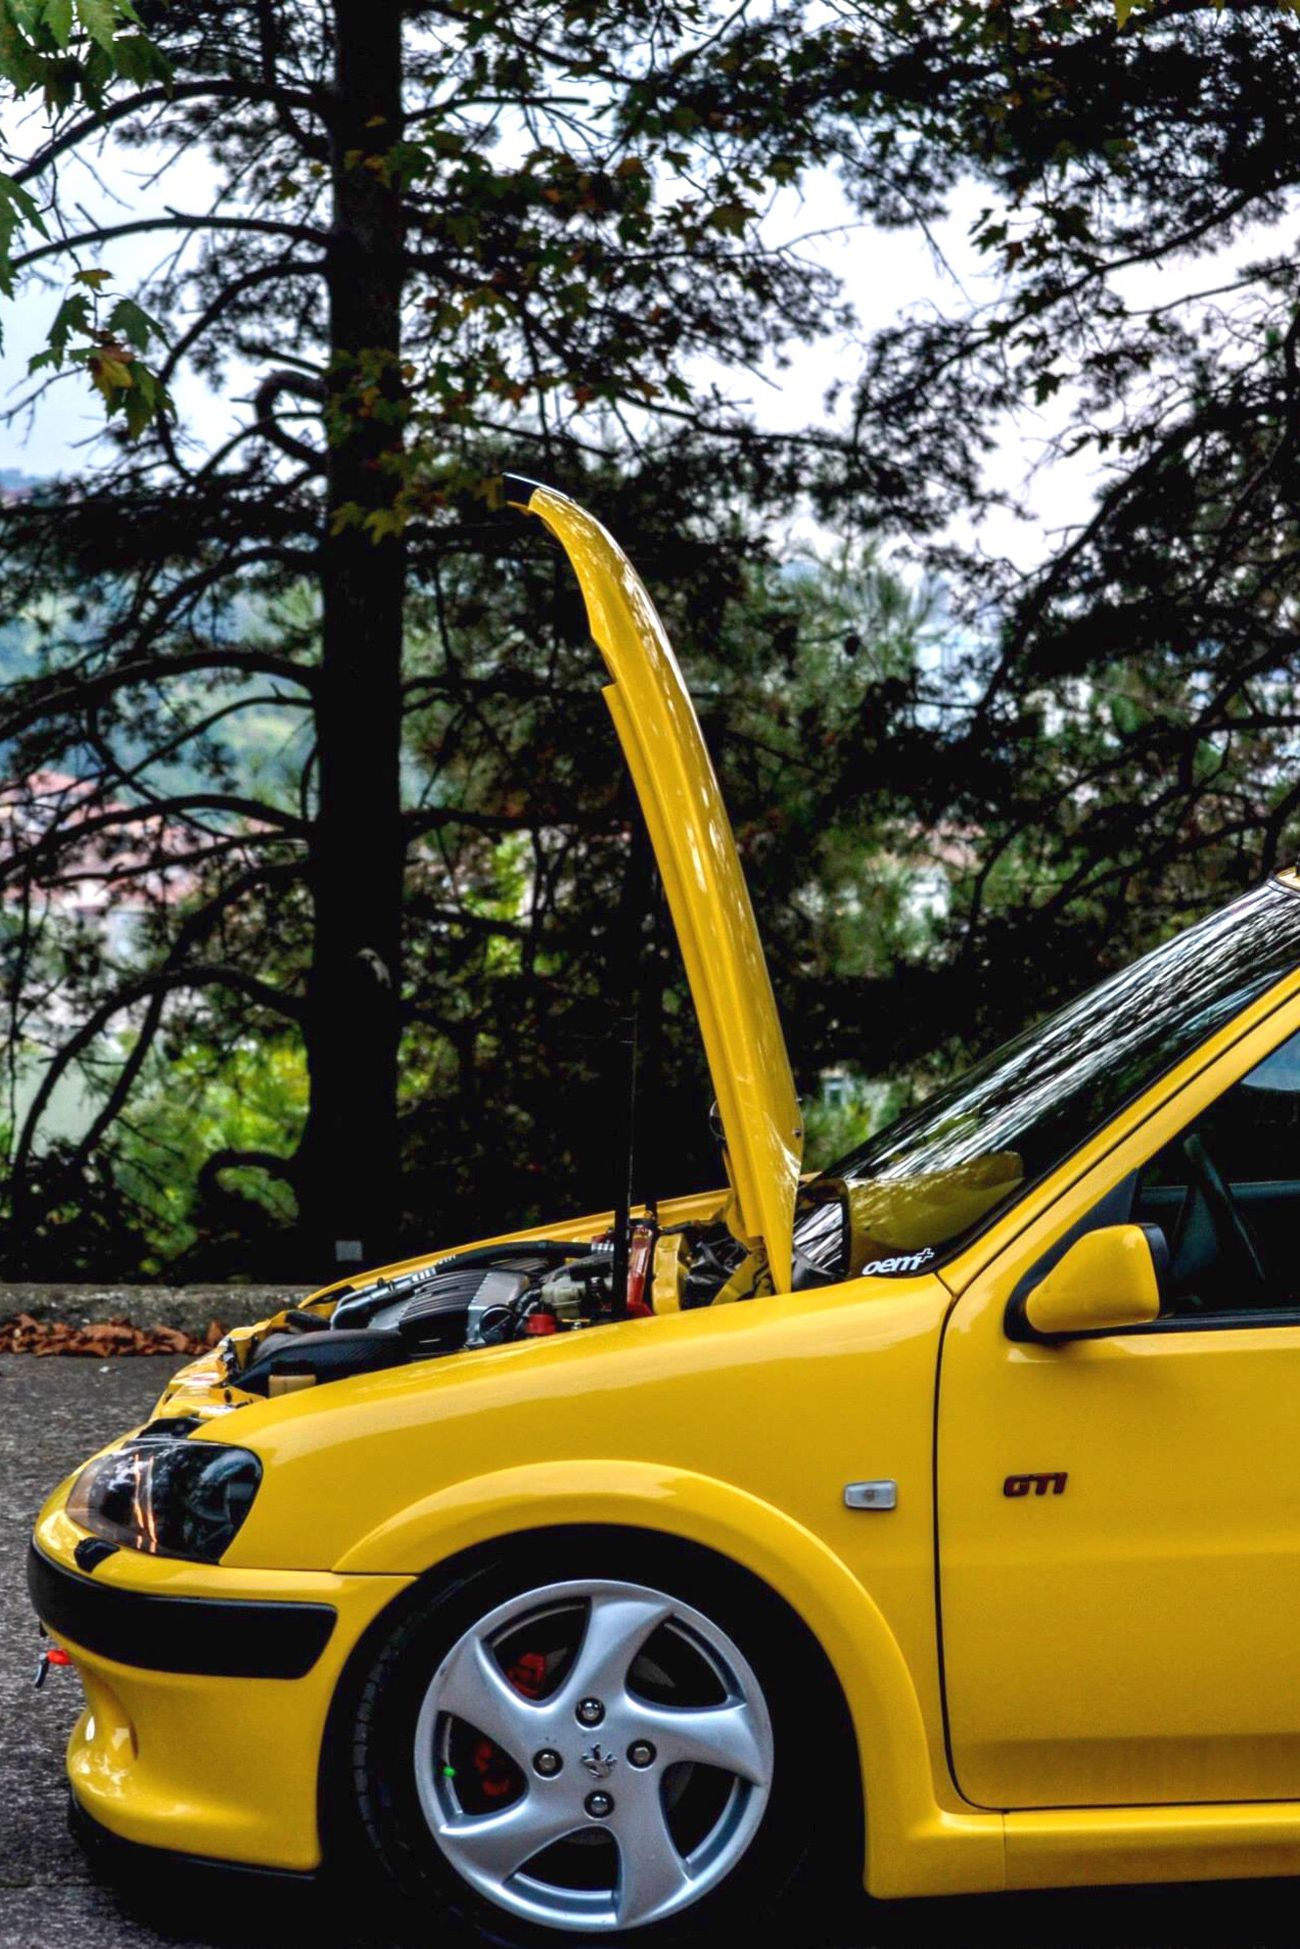 Peugeot 106gti Car Yellow Nature Society CarShow